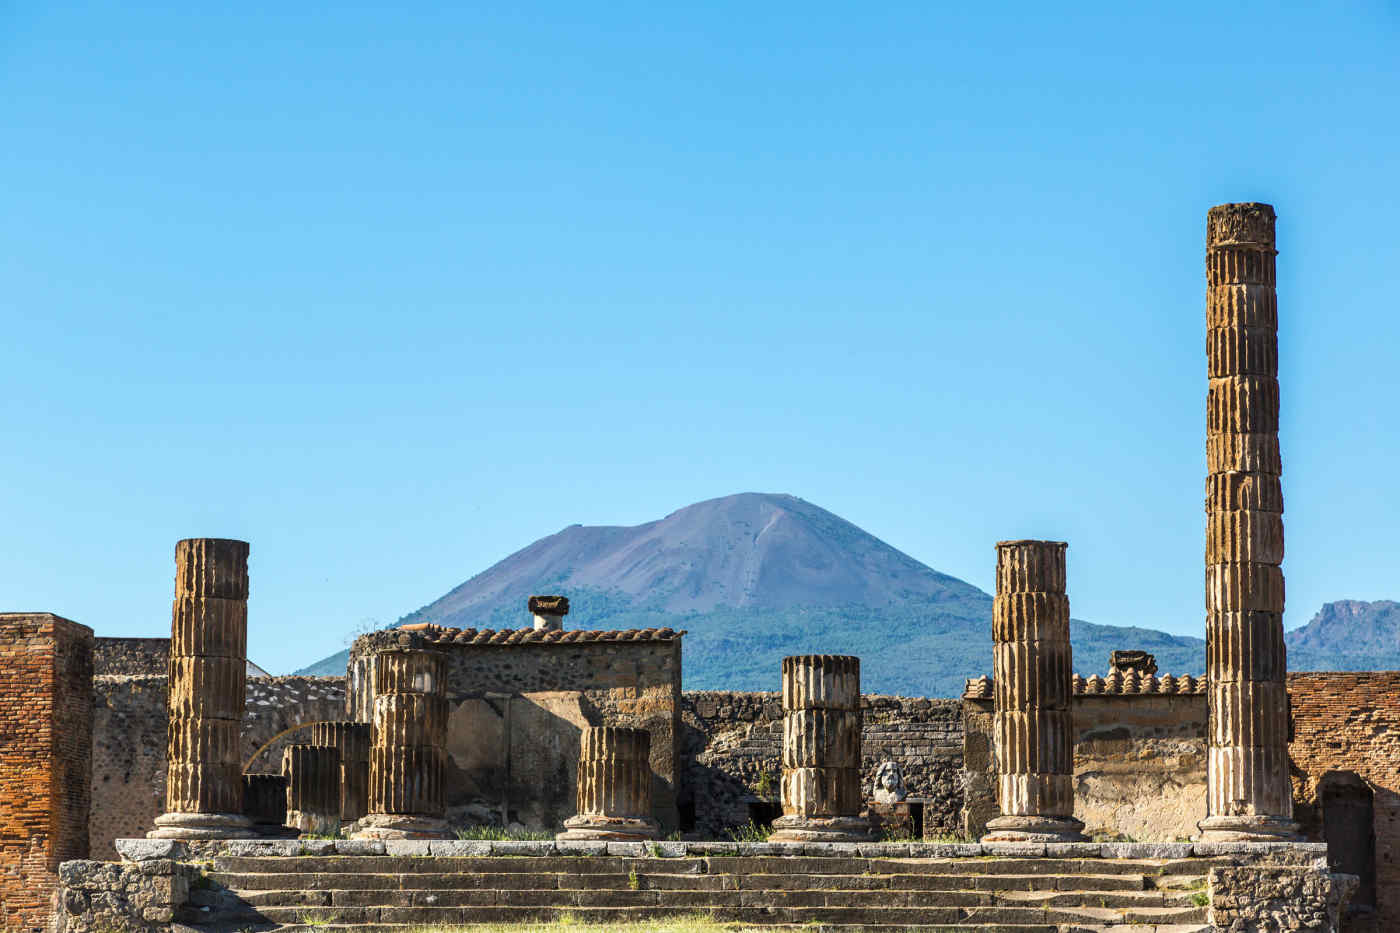 Mt. Vesuvius and the ruins of Pompeii